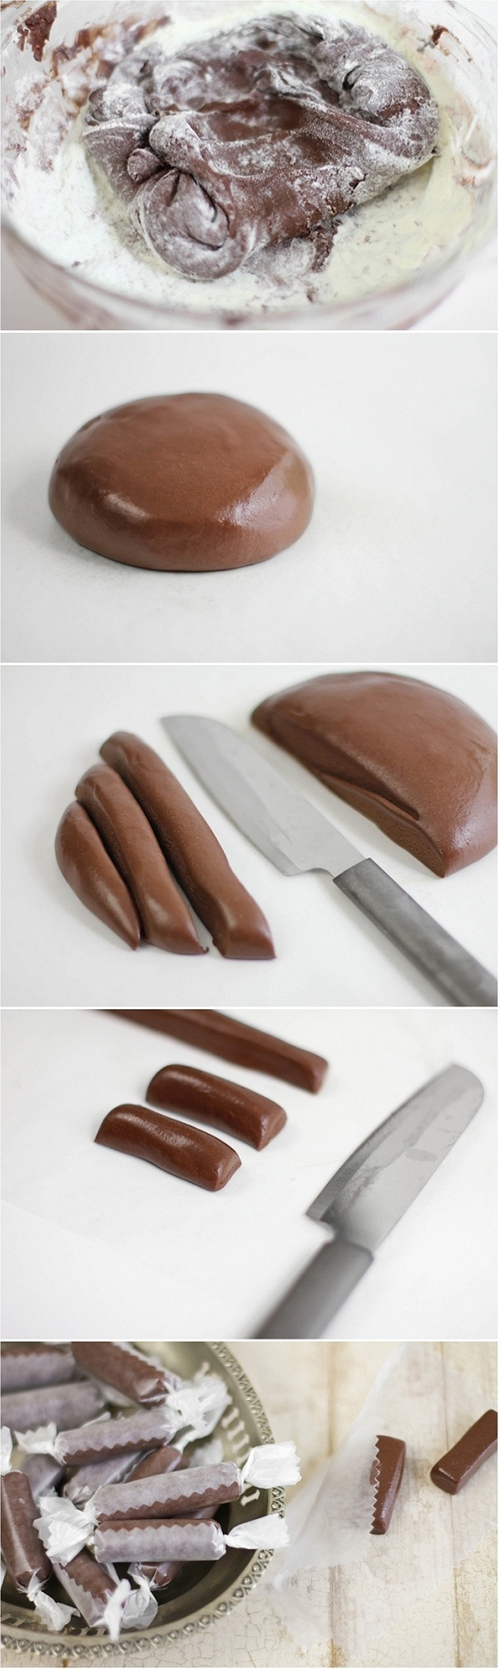 How to Make Homemade Tootsie Rolls